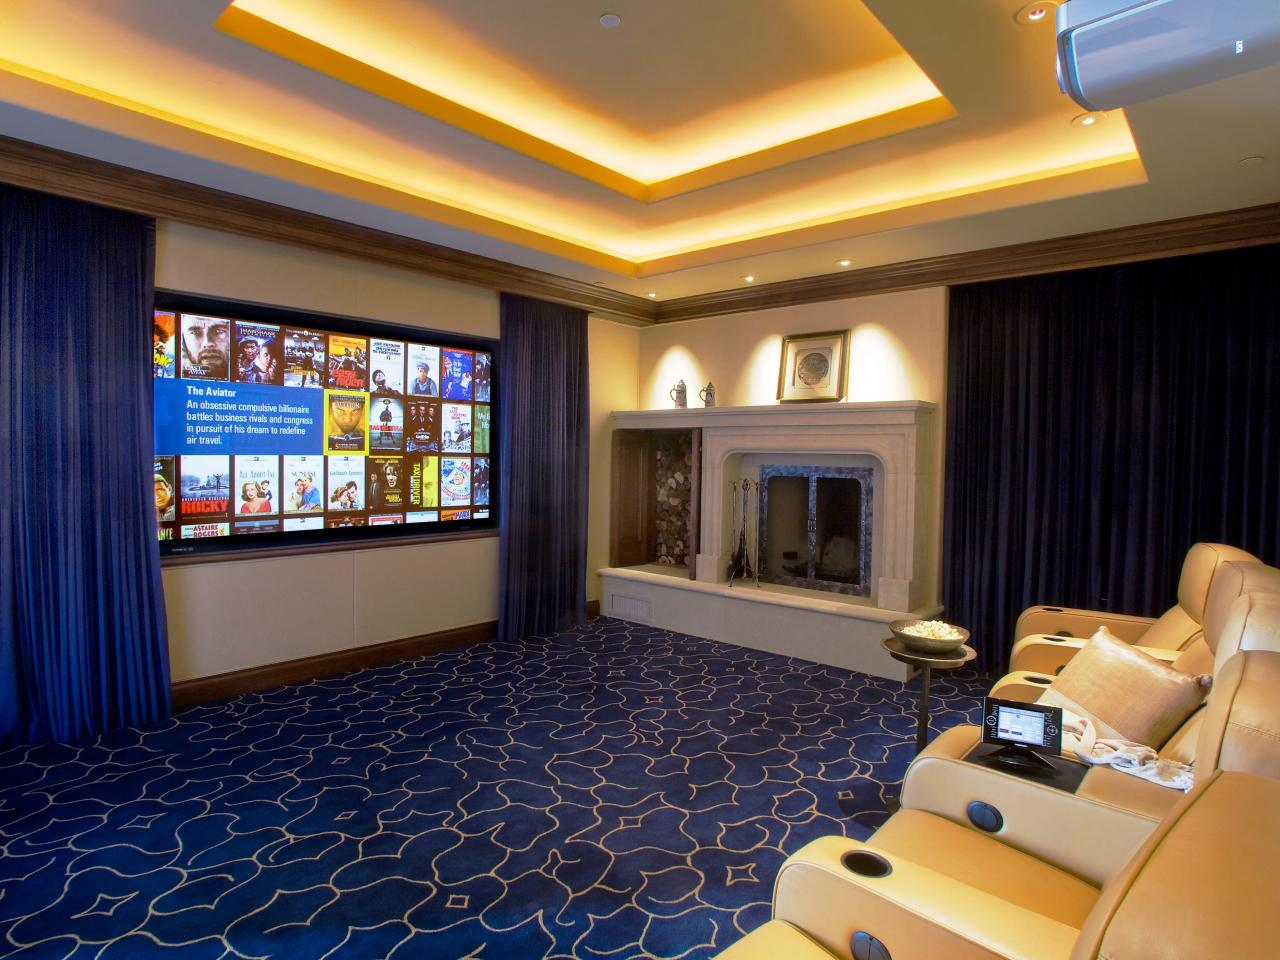 Tips For Designing The Ultimate Media Room